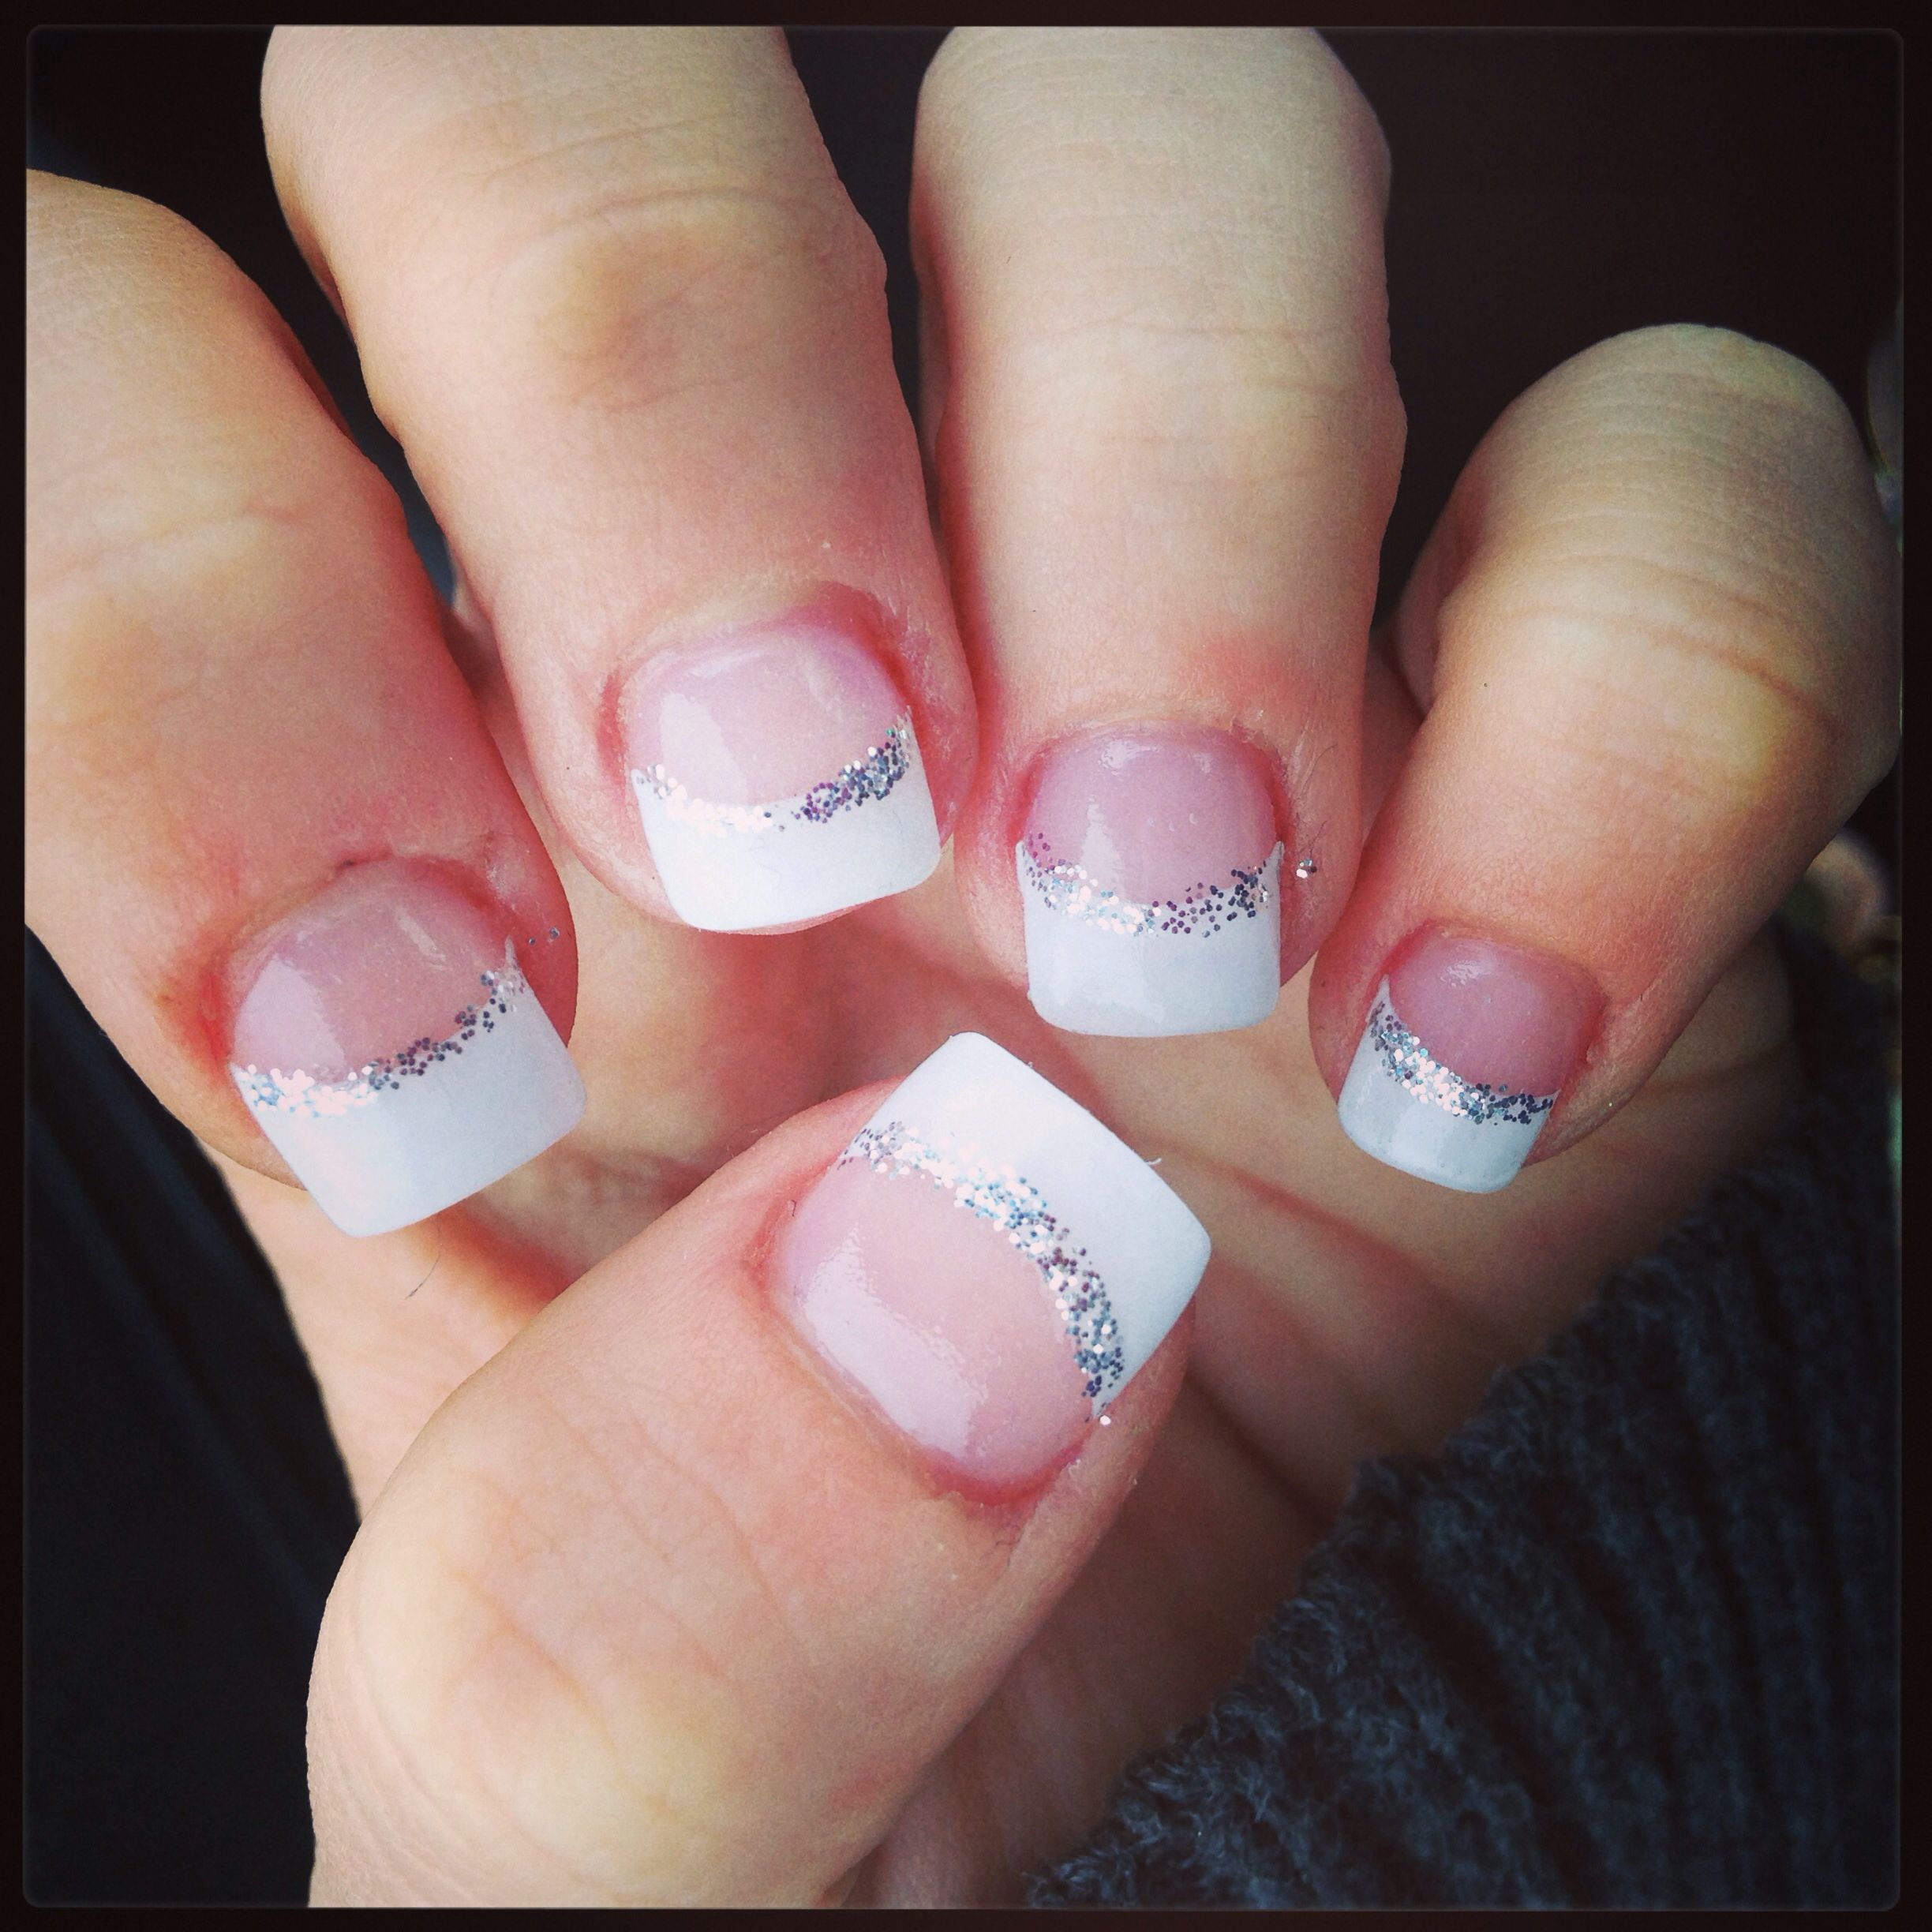 Prom Nail Designs: French Tips With Silver Design